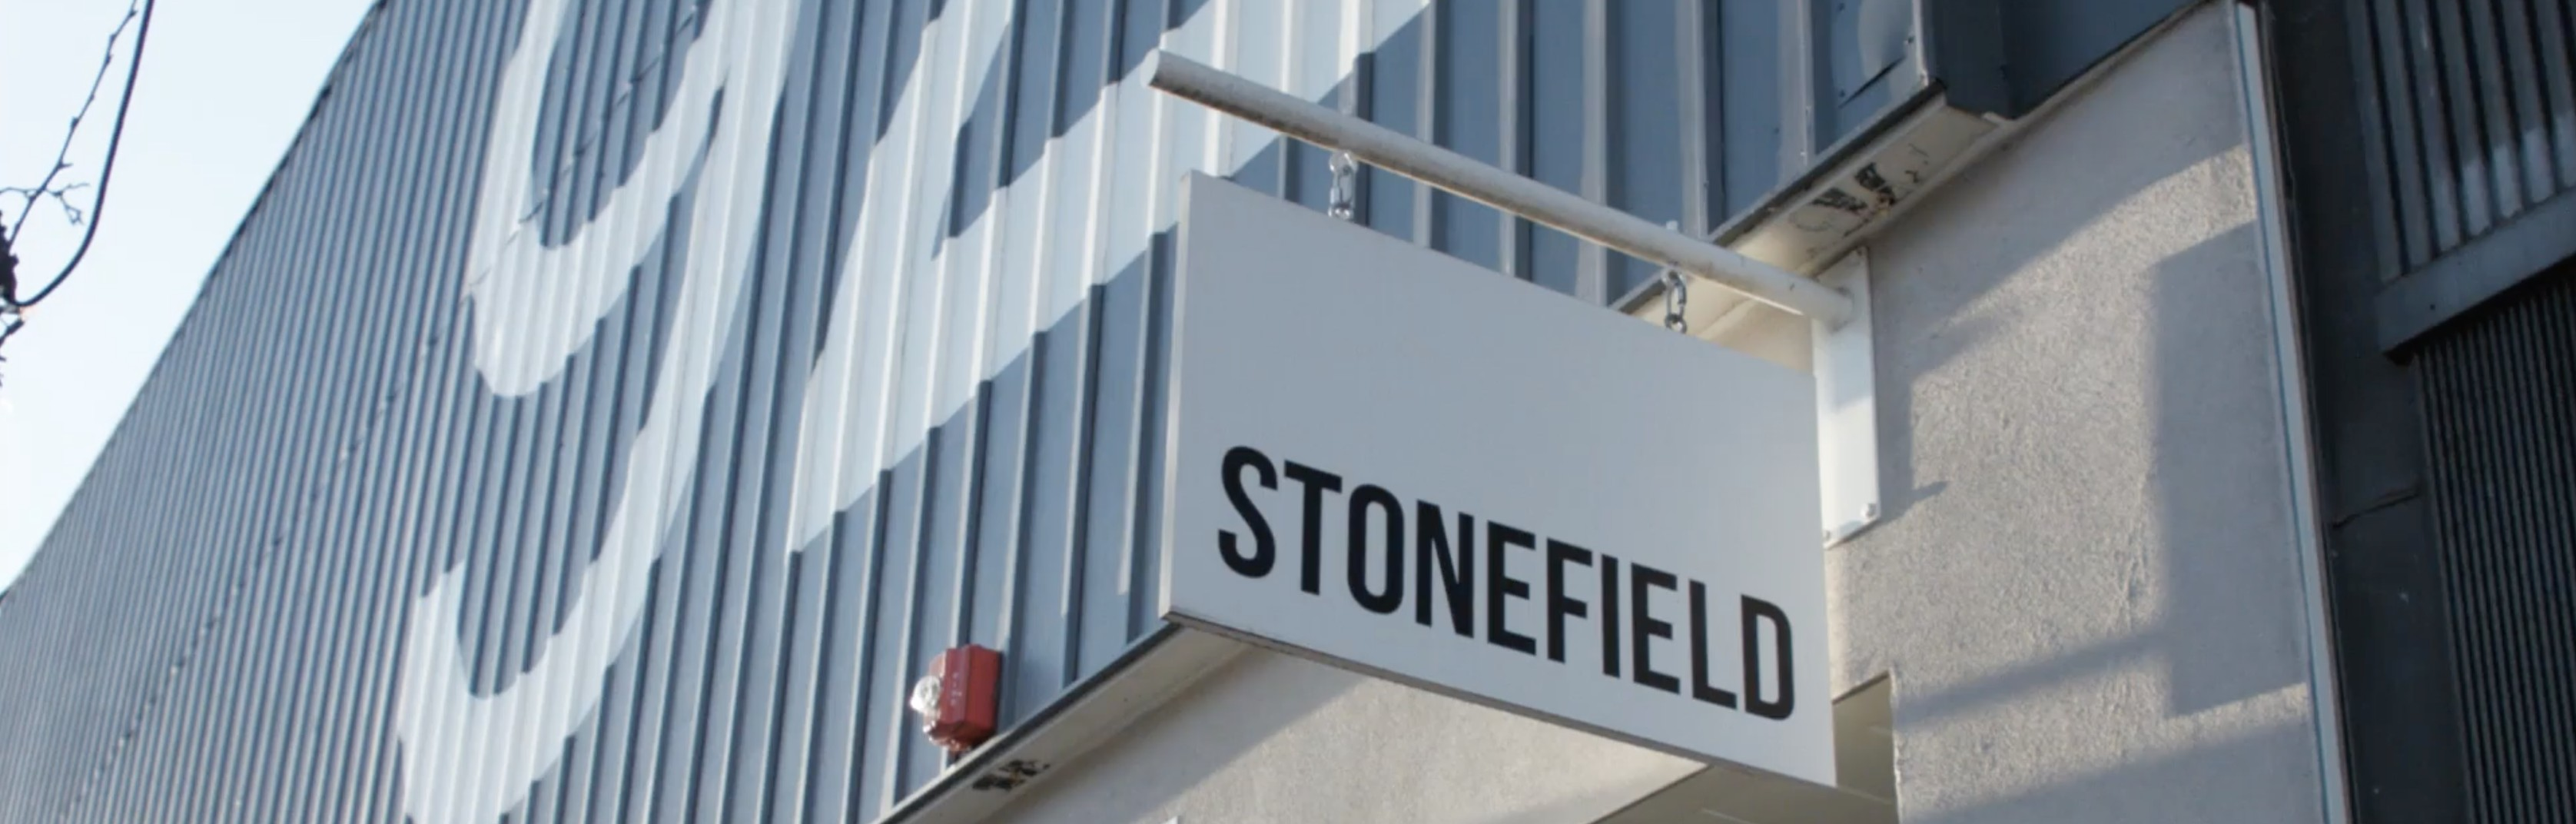 Stonefield Engineering Design Linkedin